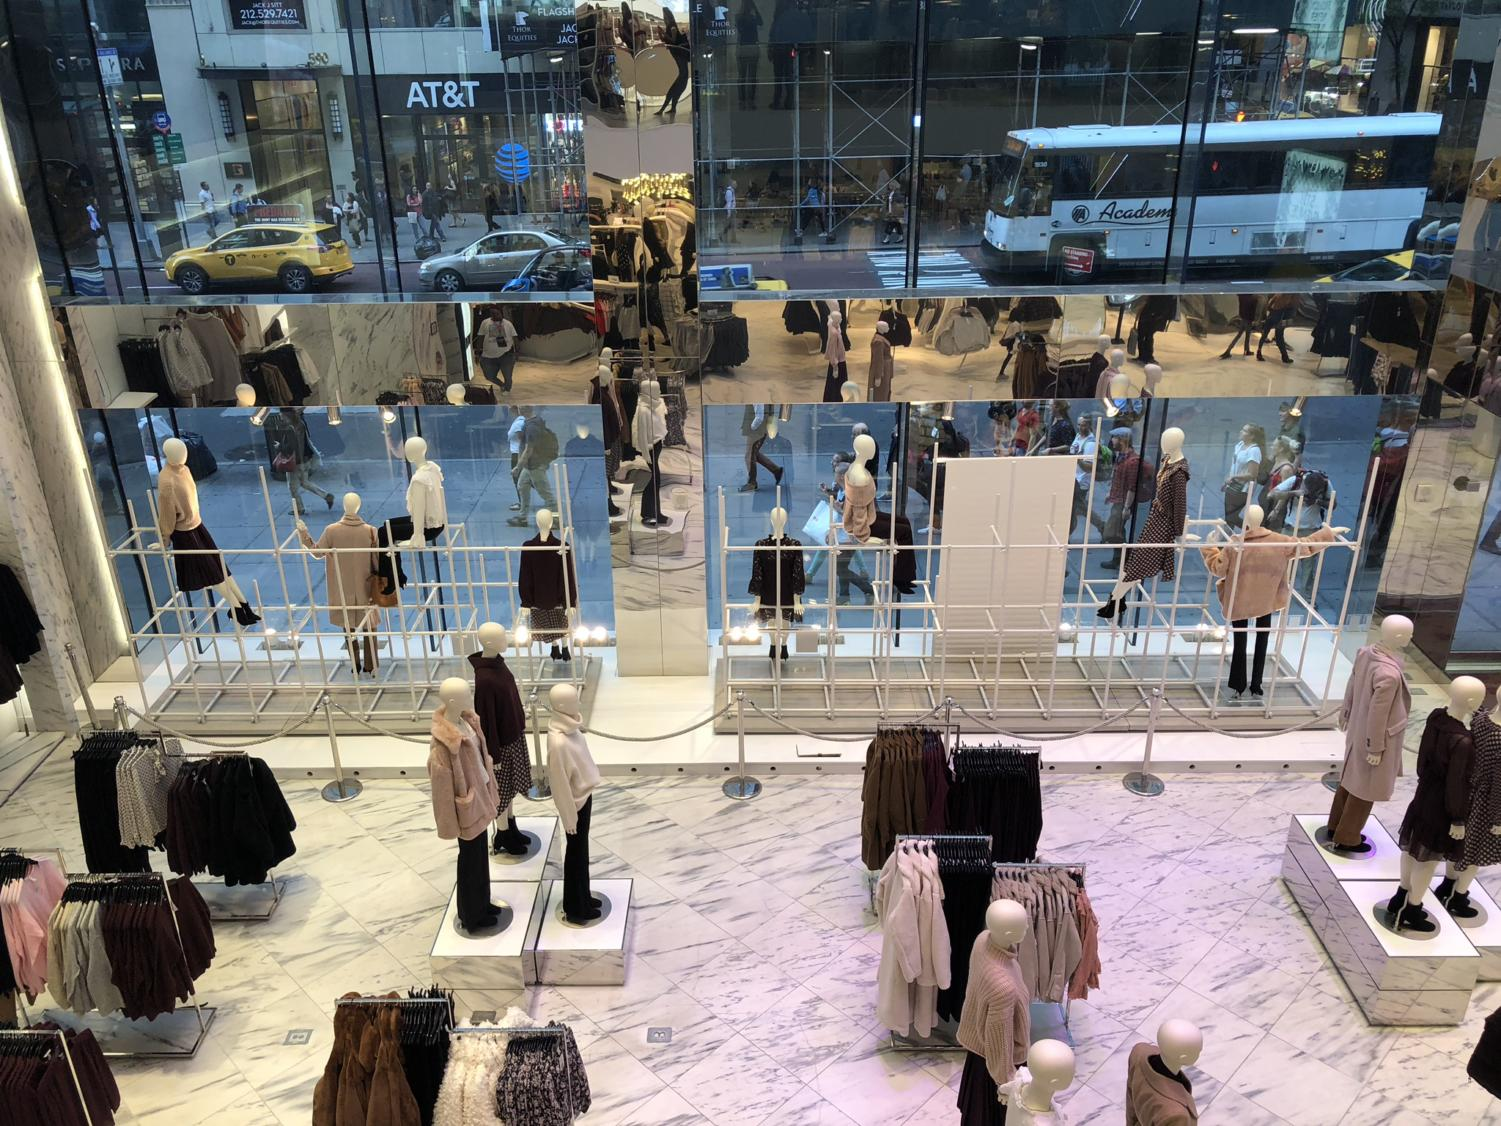 An overview of the H&M store.